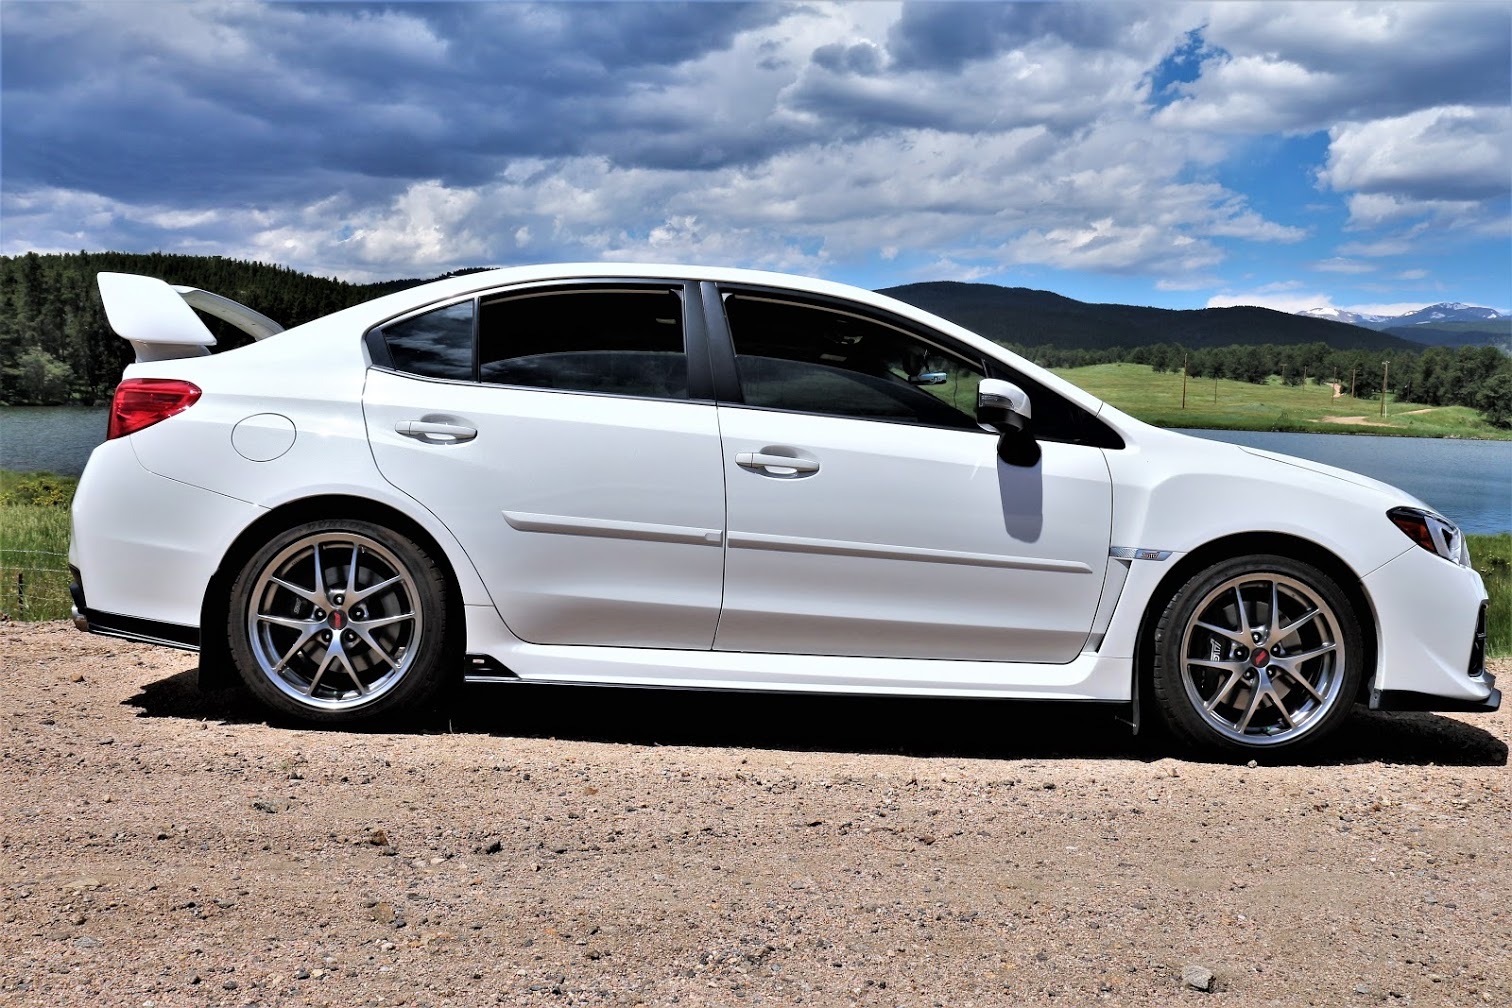 FS (USA,CO): 2015 STI Limited, 12k miles, Stock. As new.. .5k-img_8760-jpg